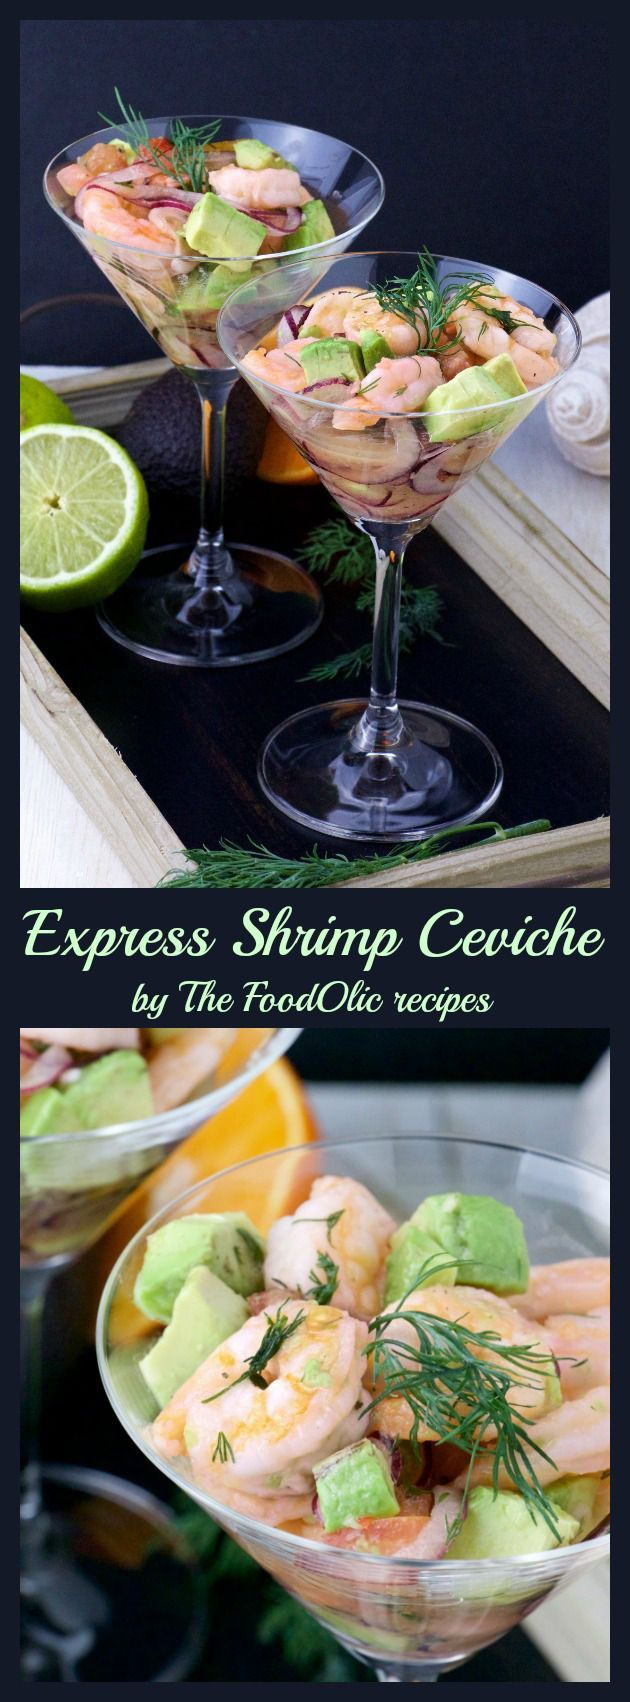 Express Shrimp Ceviche is a light and refreshing appetizer great for any occasions. It's a